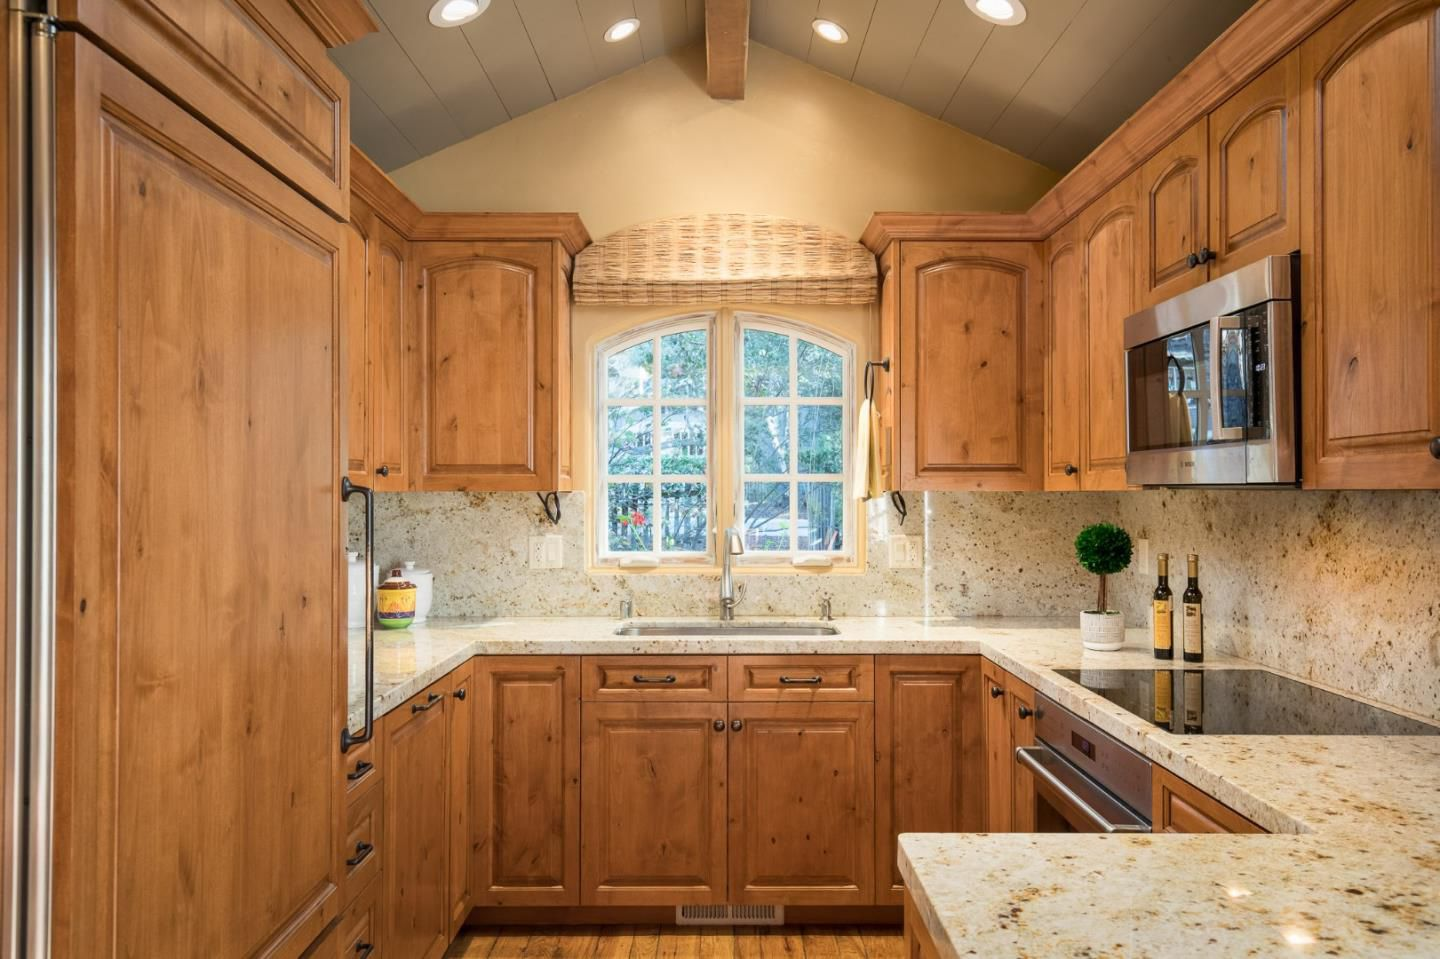 Classic Board and Batten Cottage in Carmel-by-the-Sea for sale -Kitchen with wood cabinets